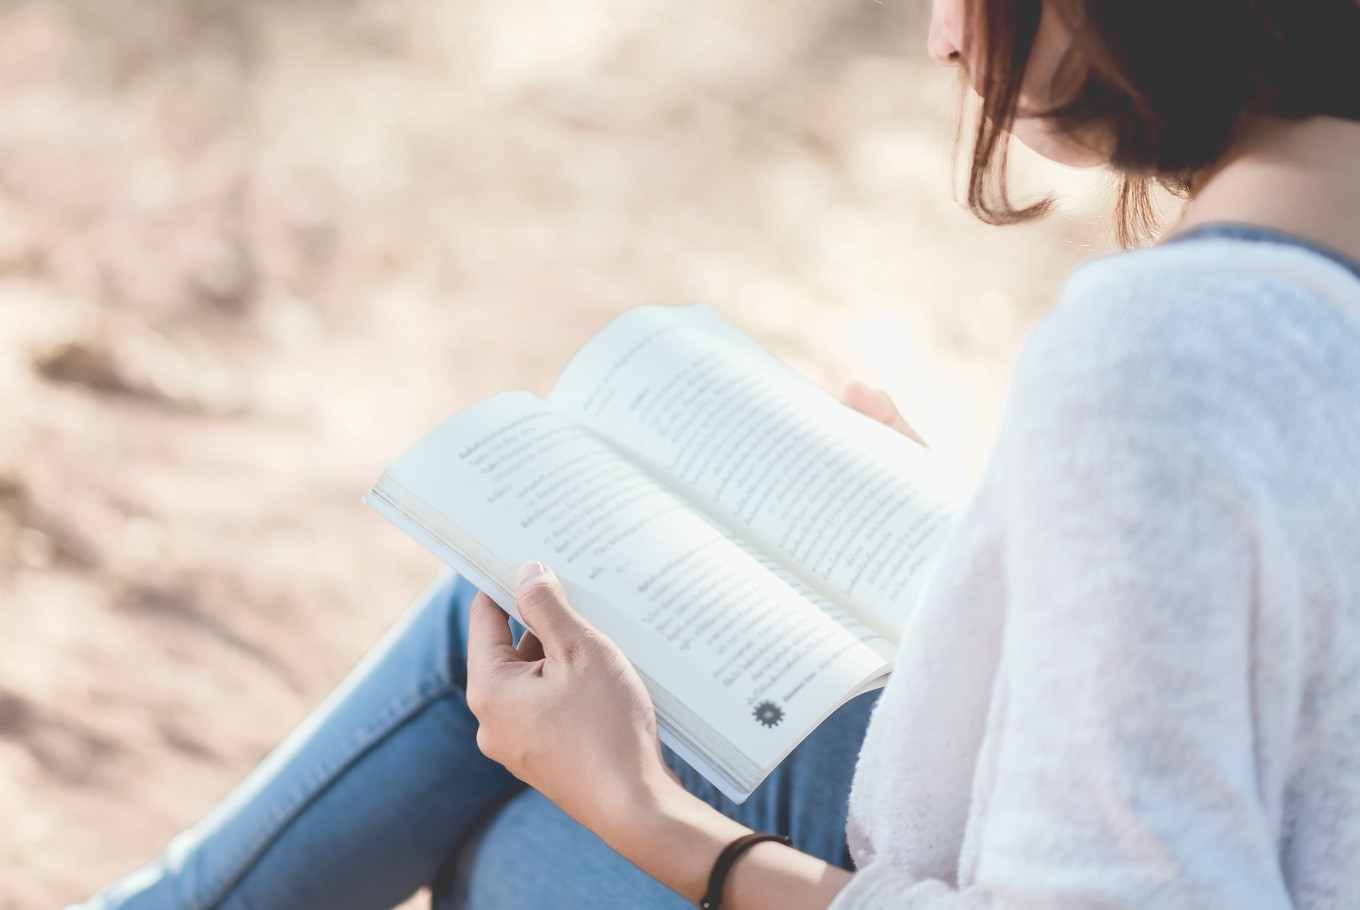 Decreasing stress, increasing skills: Very good reasons to read regularly